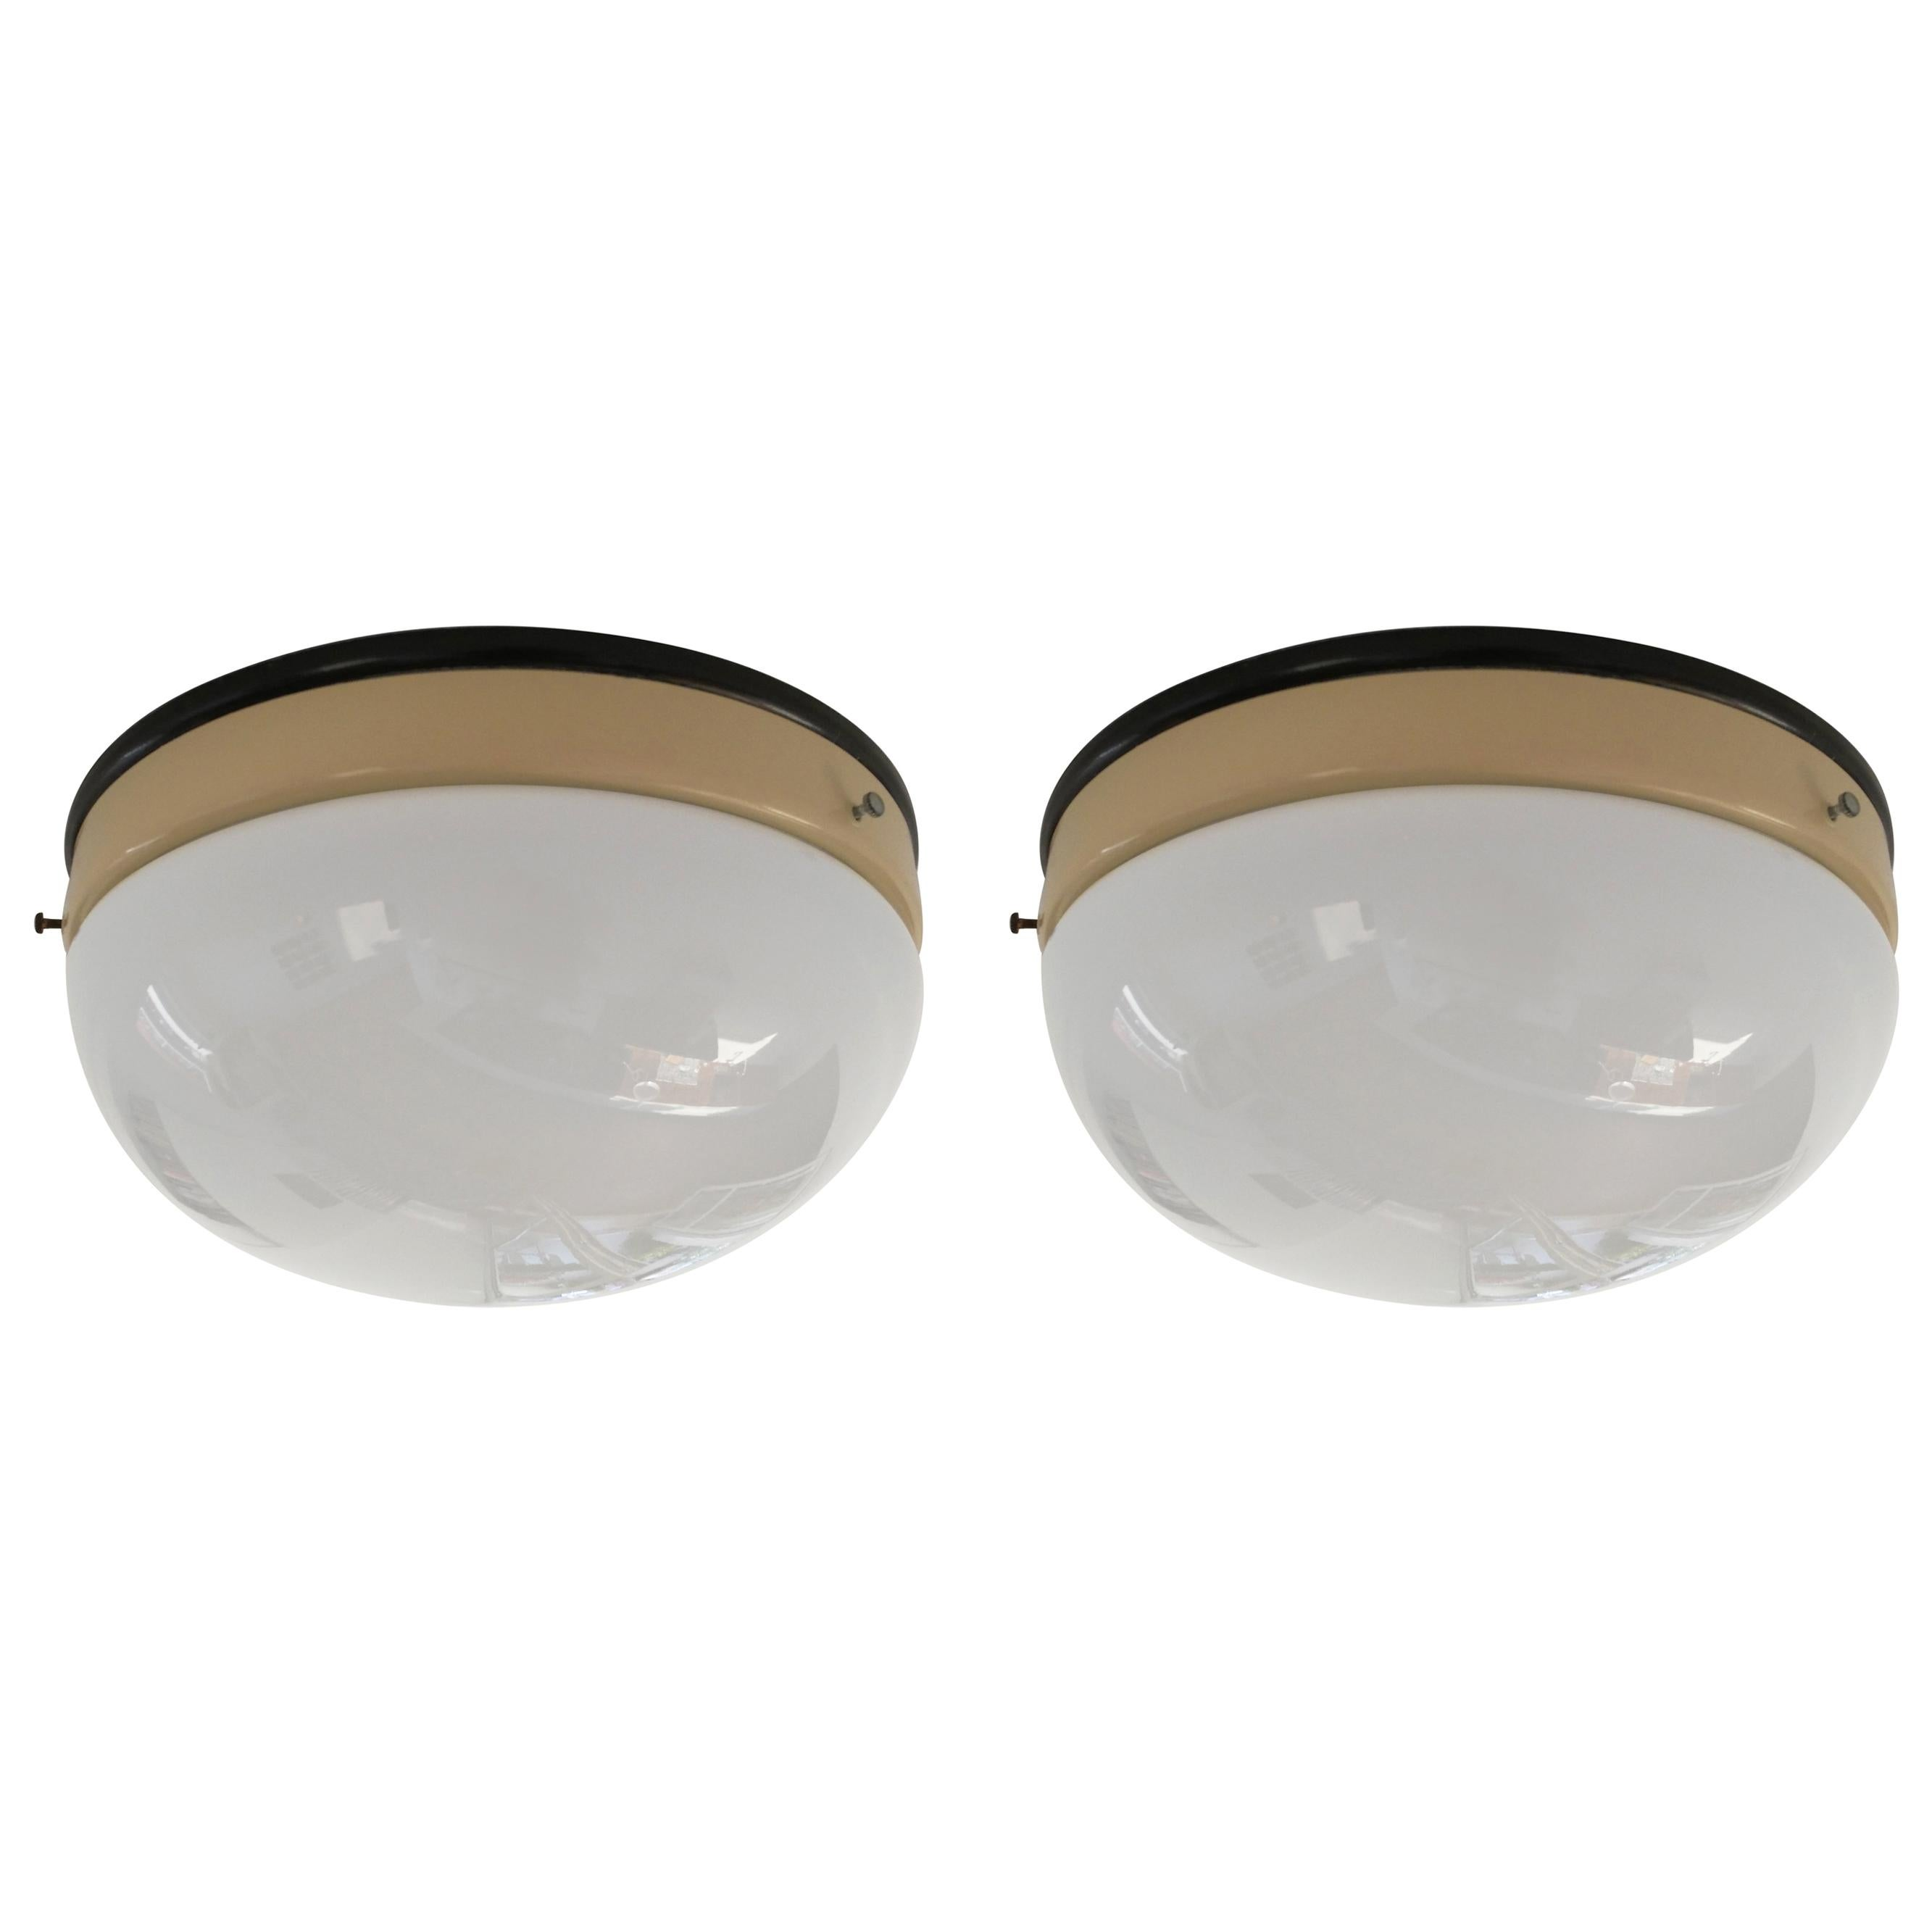 Set of Two Bauhaus Ceiling Lamps / Lights, 1940s